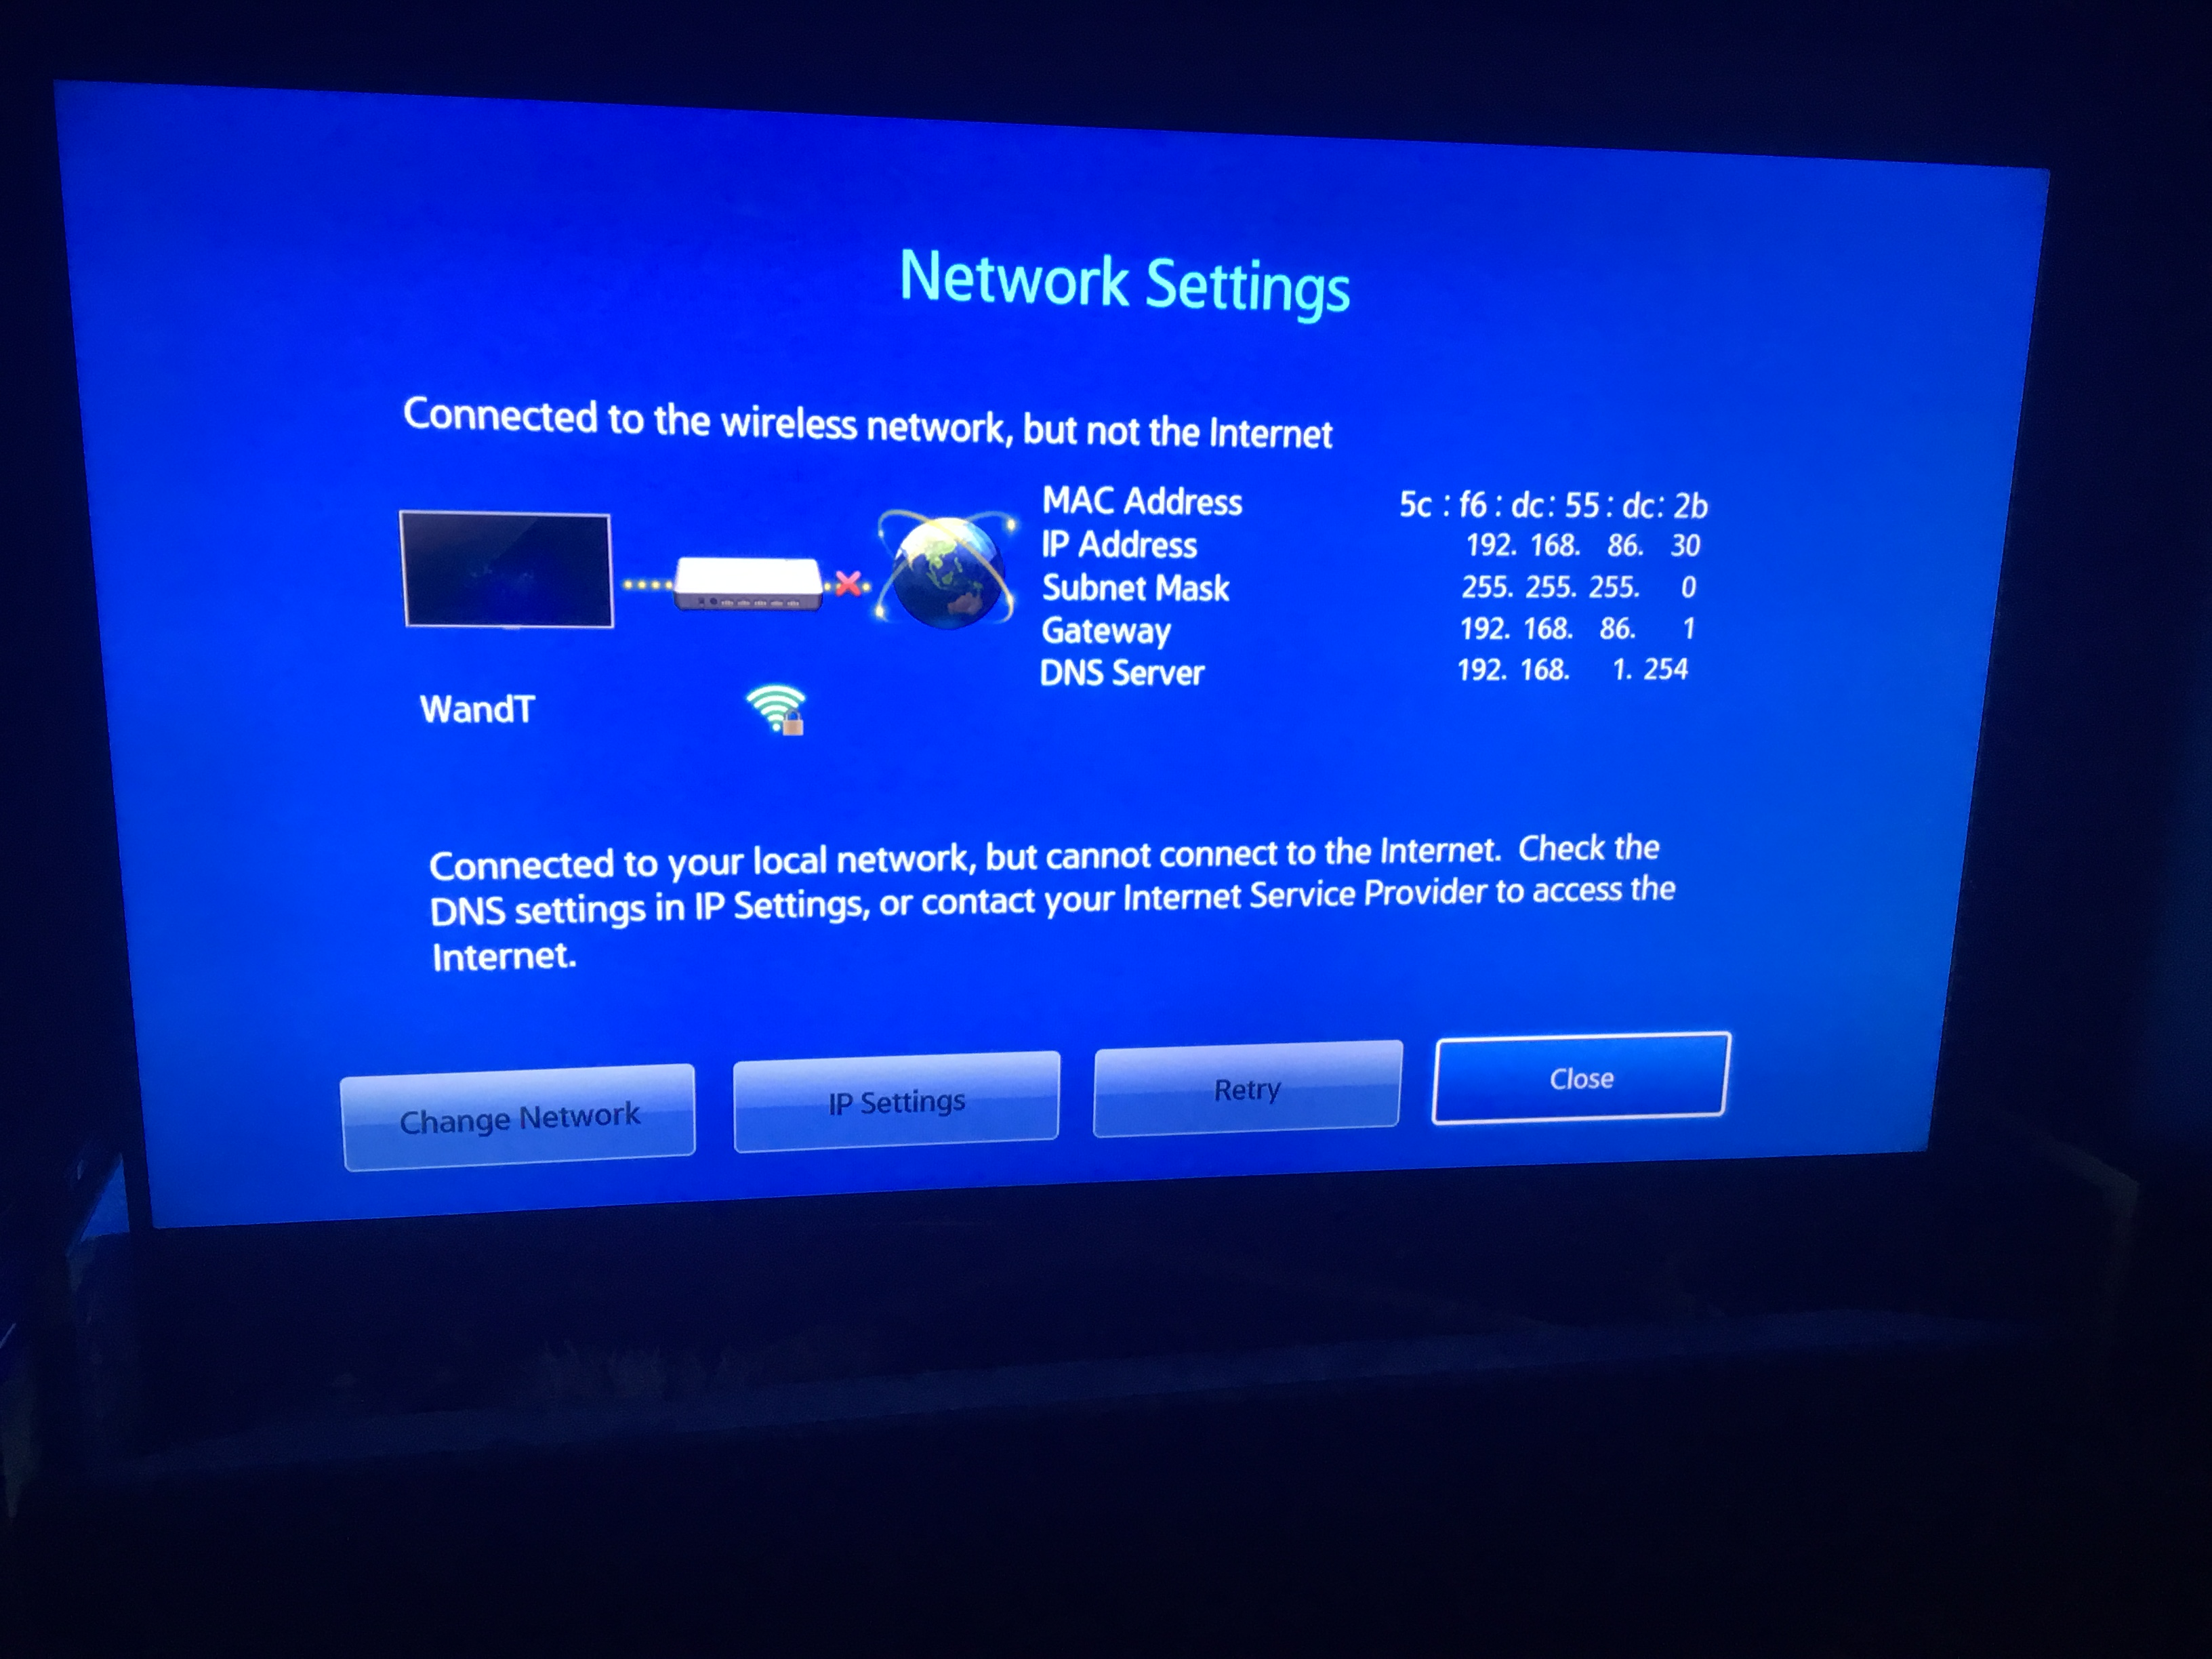 Google wifi unable to connect to Netflix app on smart TV